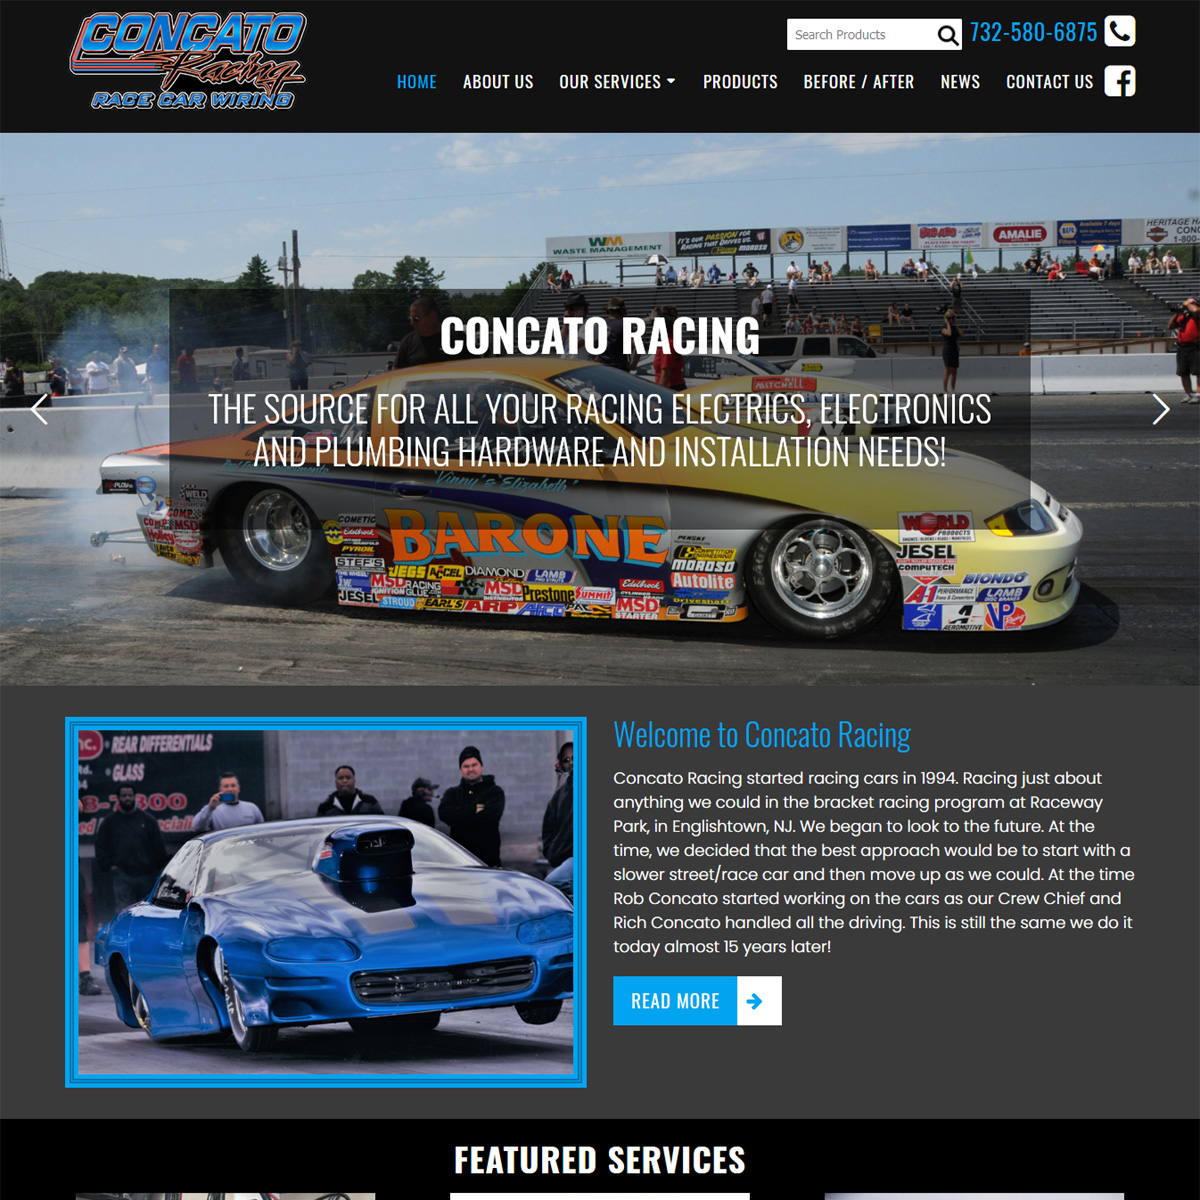 Concato Racing race care wiring and plumbing website design